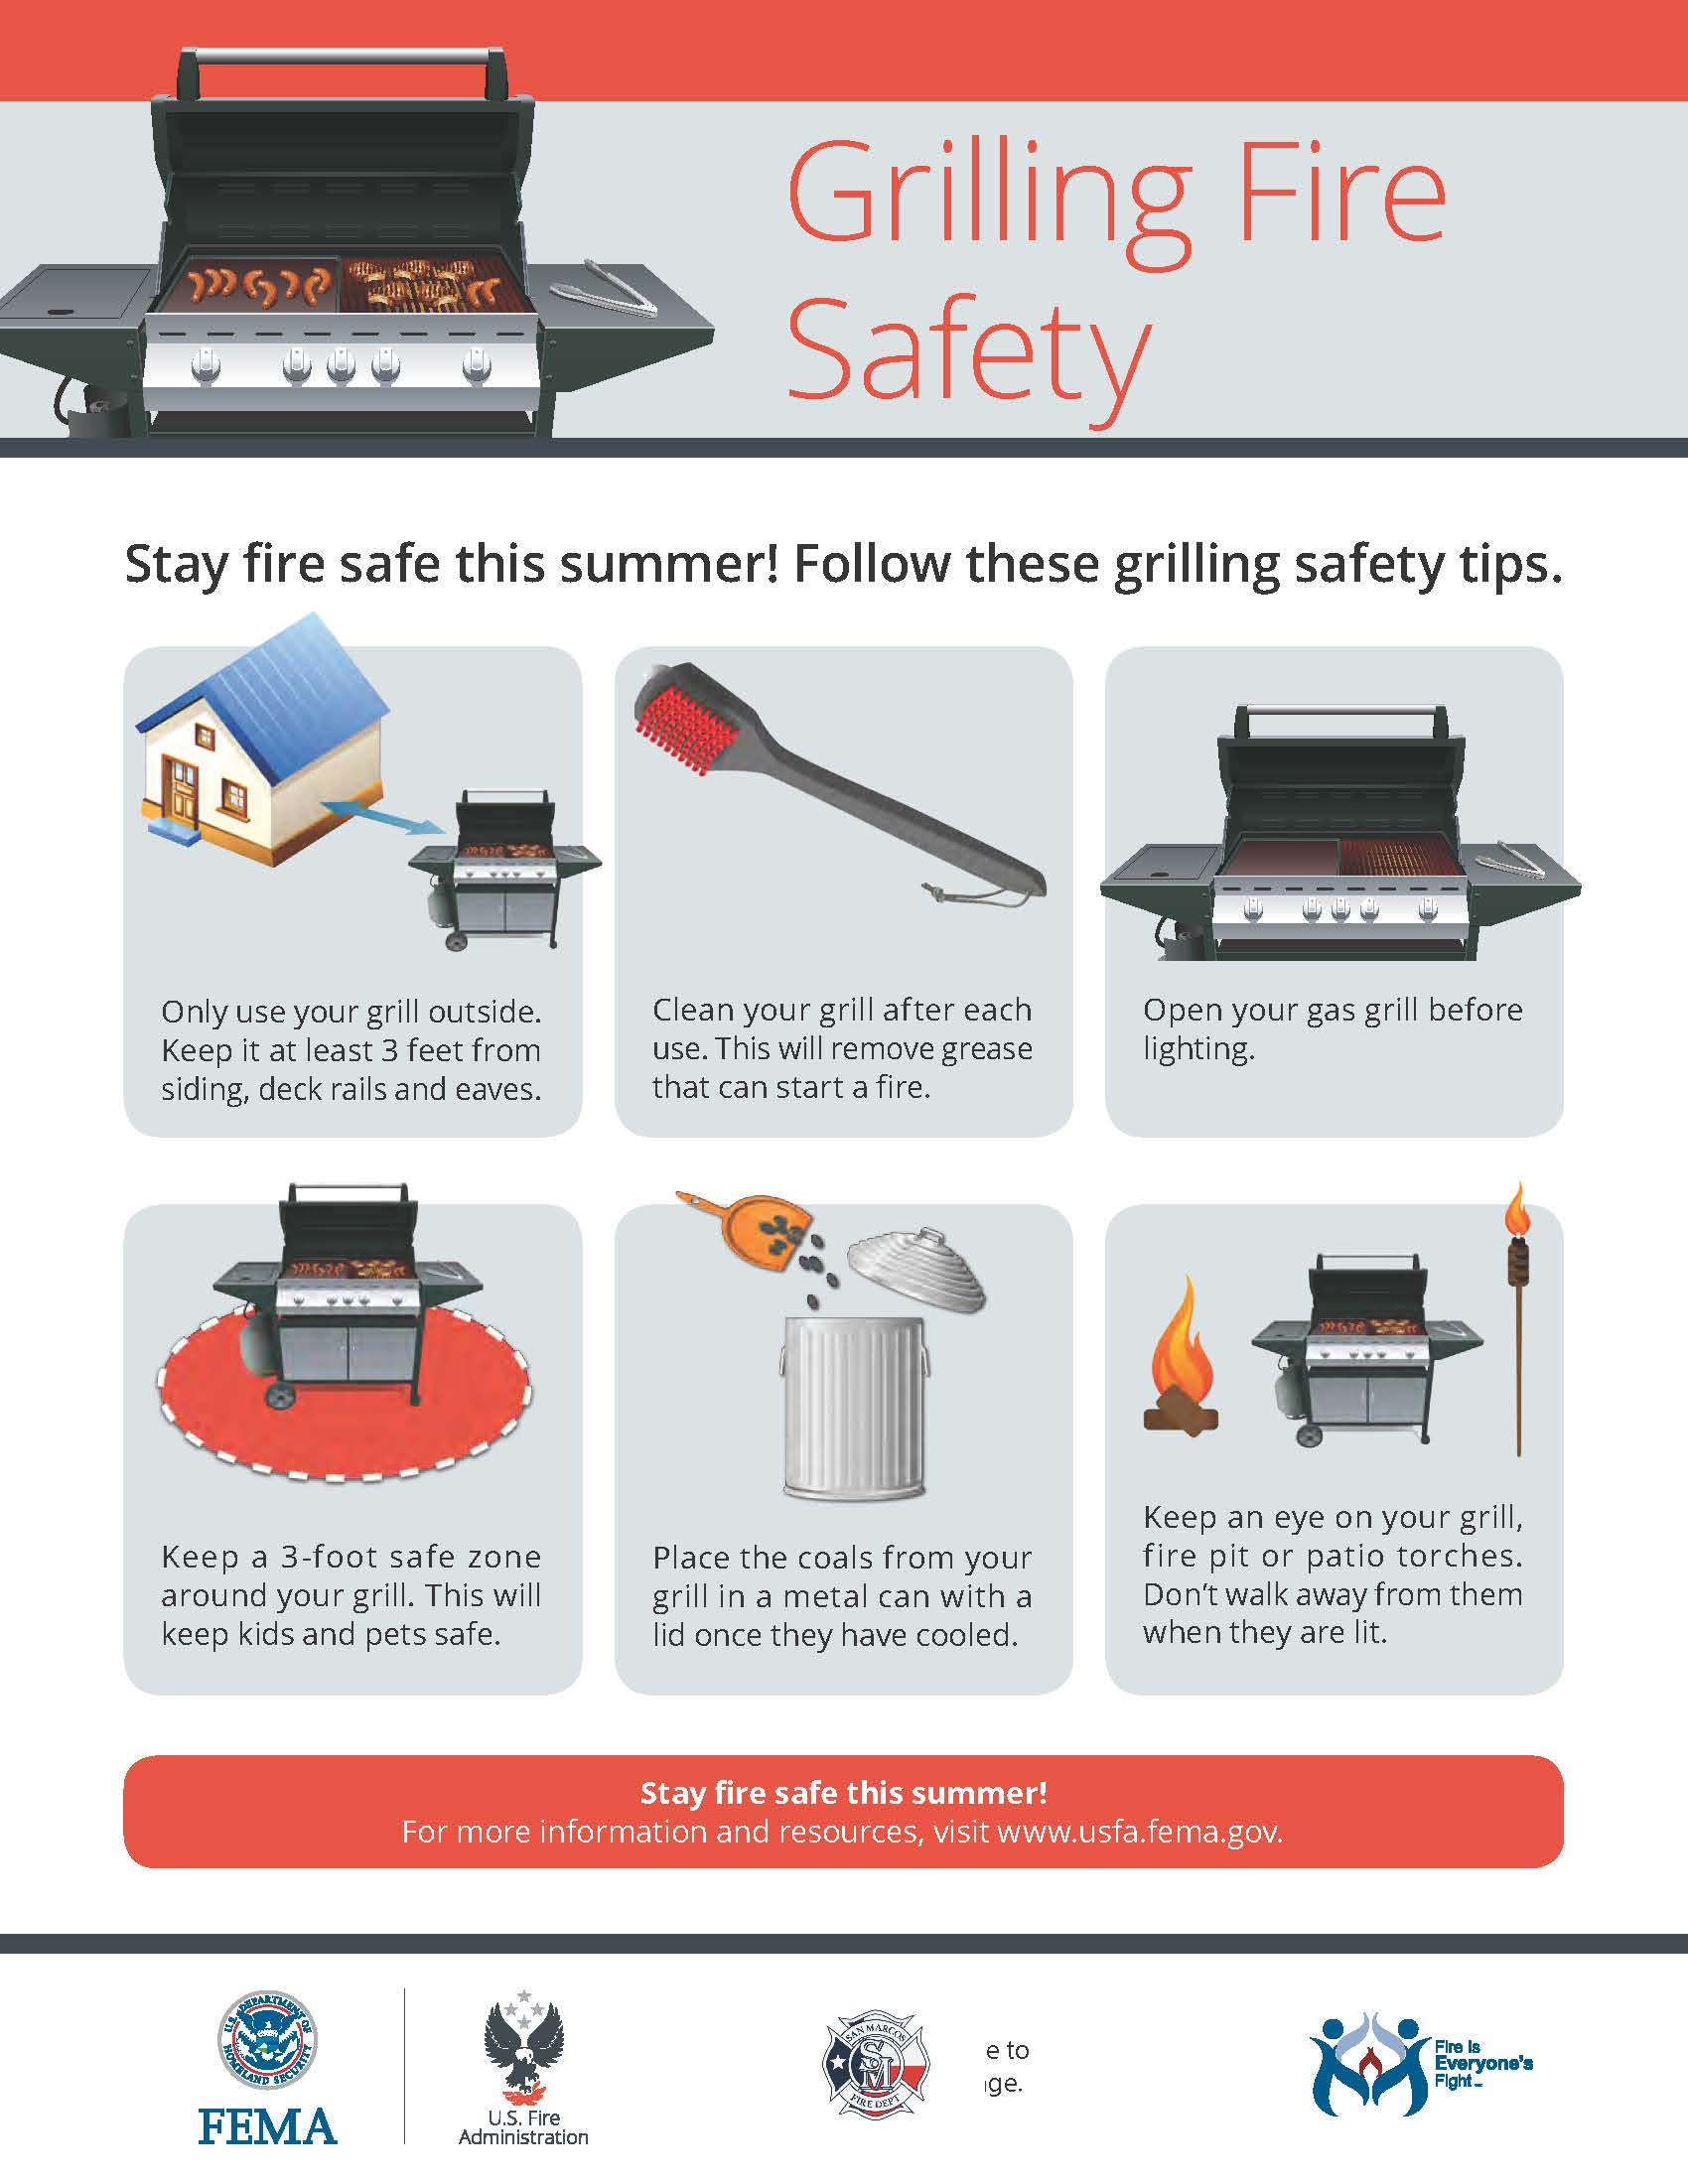 grilling_fire_safety_flyer image